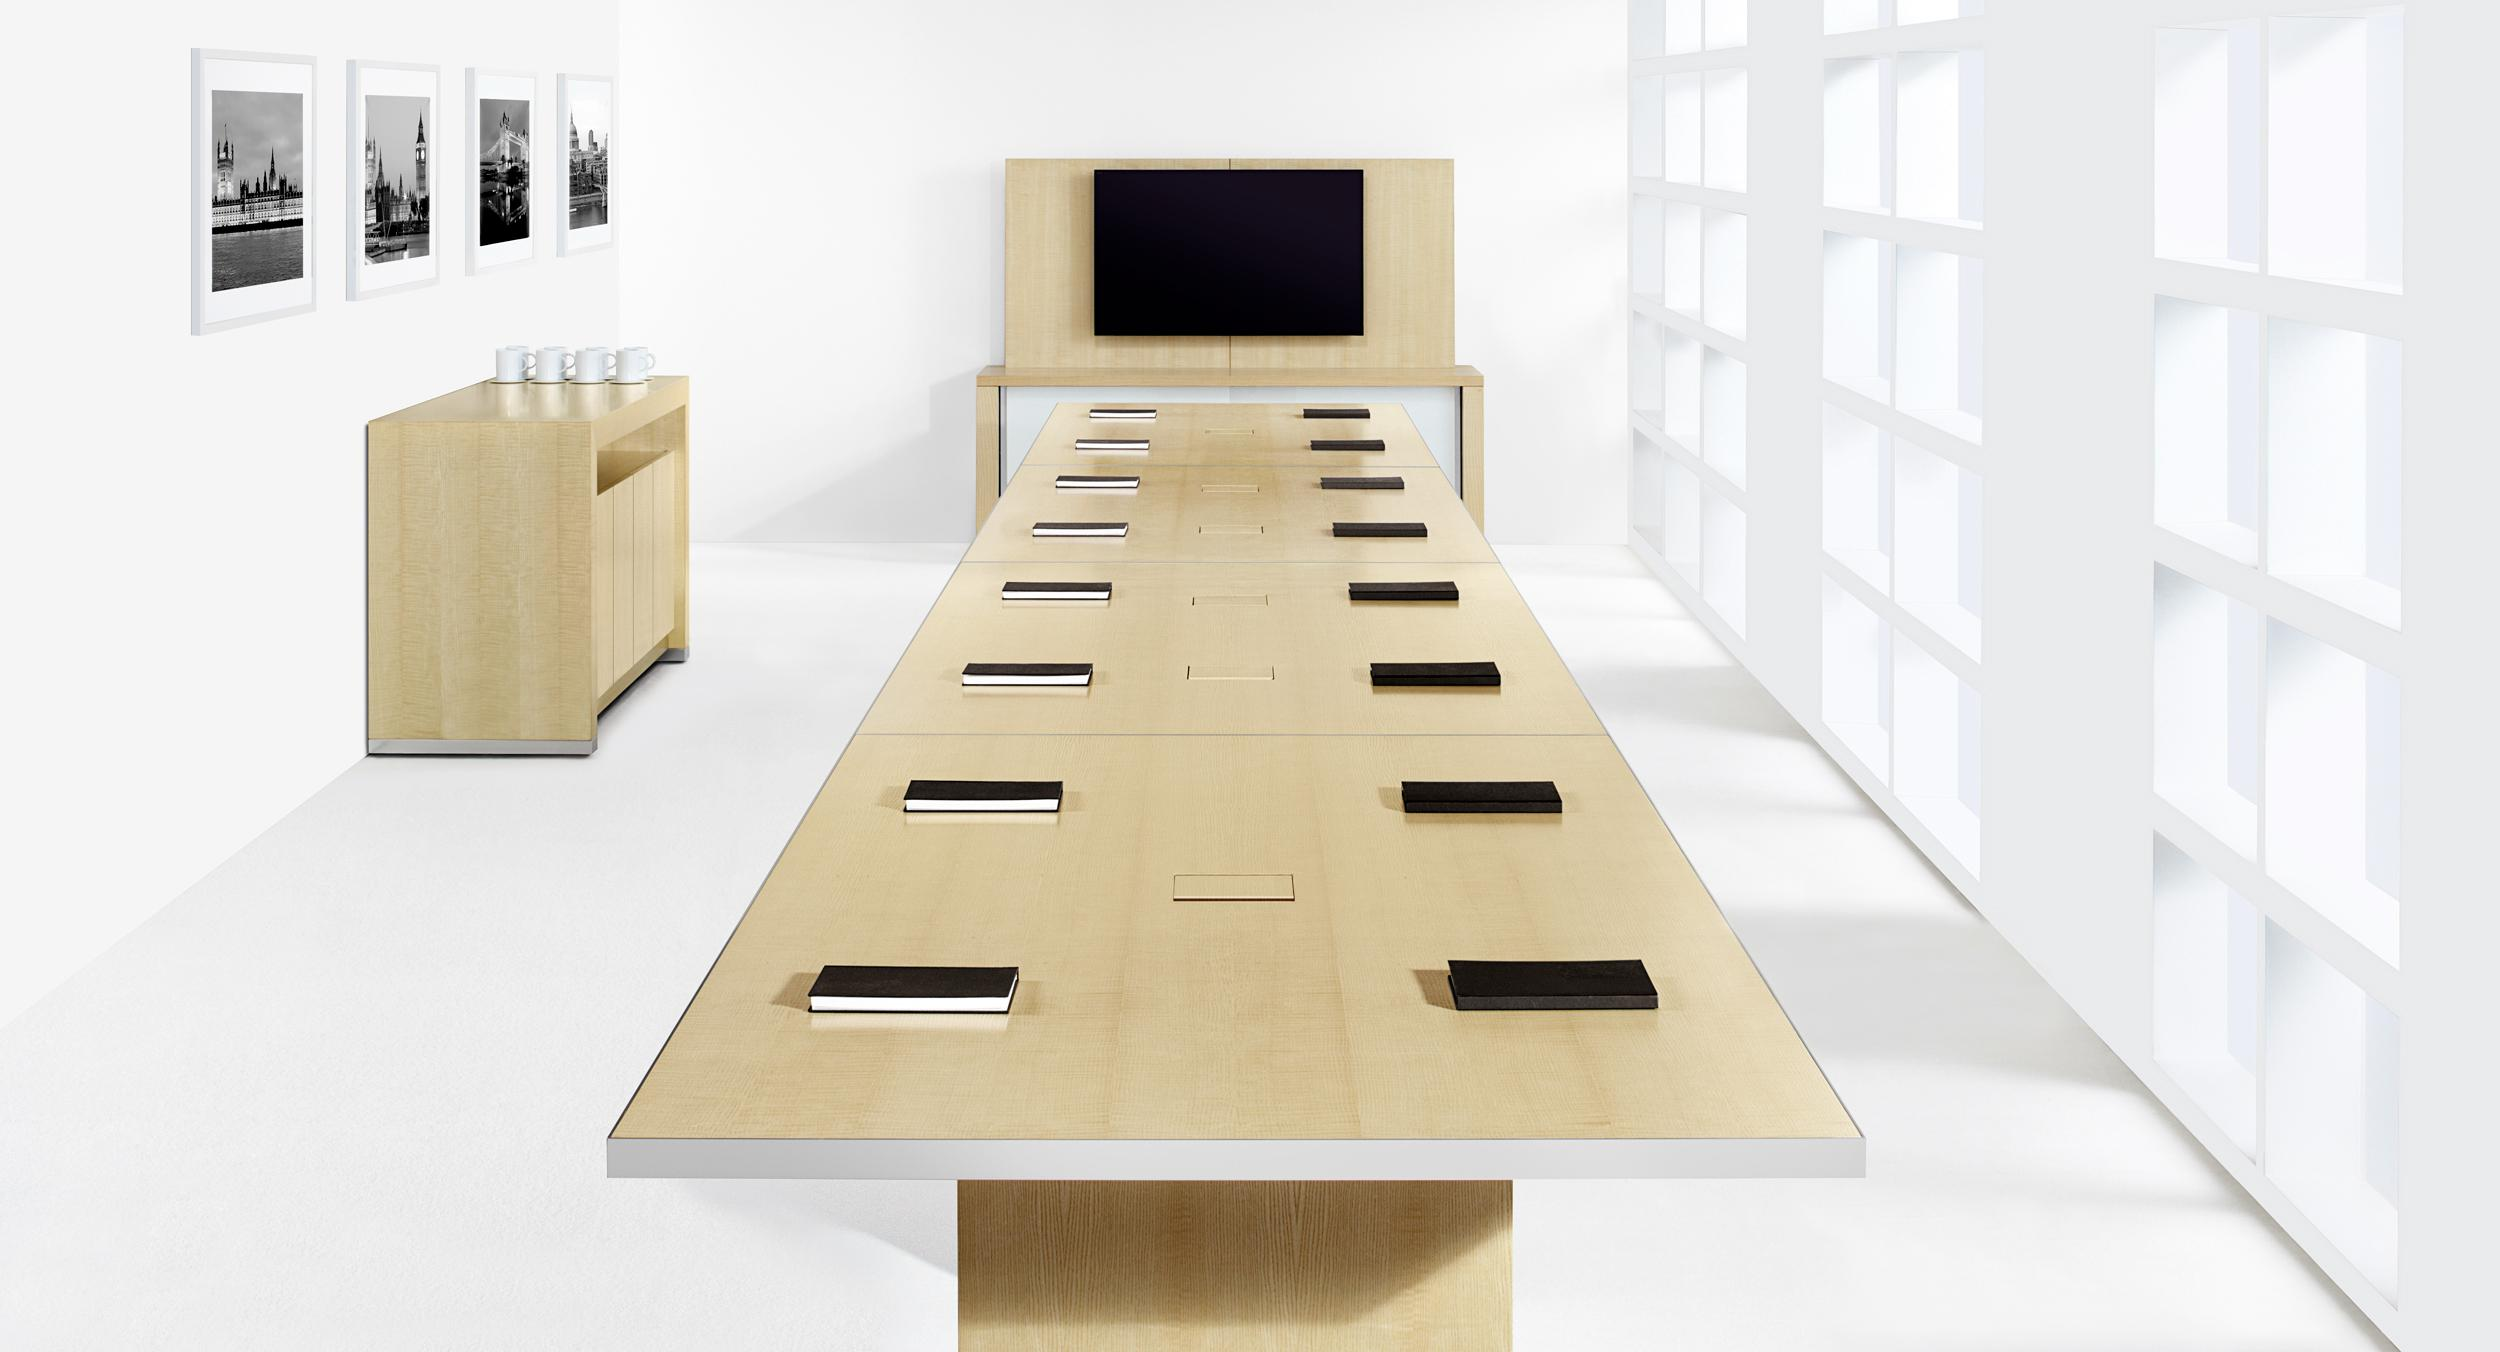 Motus pairs uncompromising aesthetics with an innovative and intuitive interface to redefine reconfigurable tables.